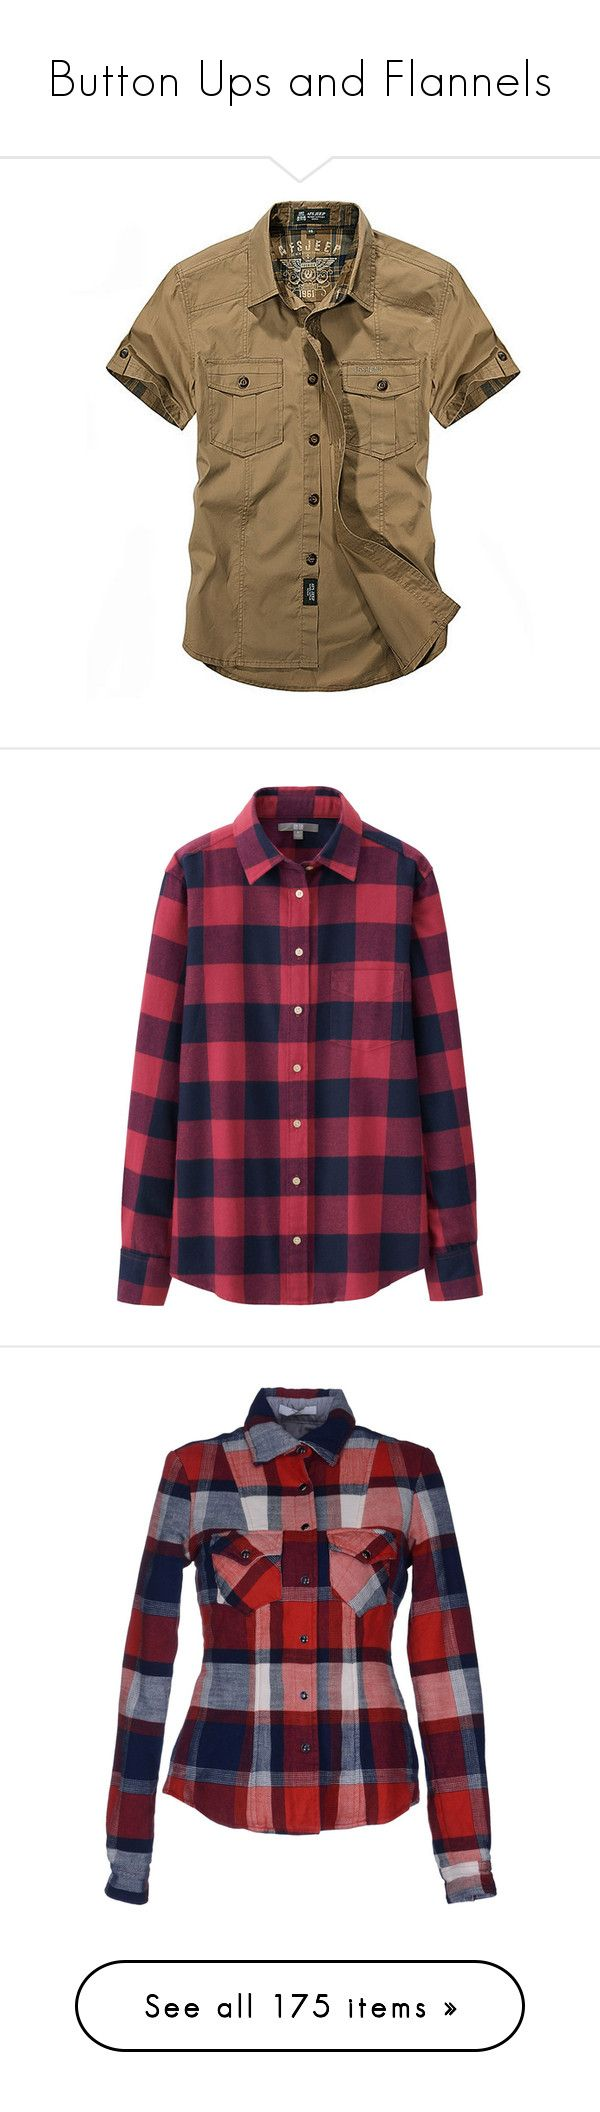 """Button Ups and Flannels"" by aj-the-creepypasta ❤ liked on Polyvore featuring men's fashion, men's clothing, men's shirts, men's casual shirts, mens sport shirts, mens long sleeve casual shirts, mens short sleeve dress shirts, mens cotton shirts, mens long sleeve collared shirts and tops"